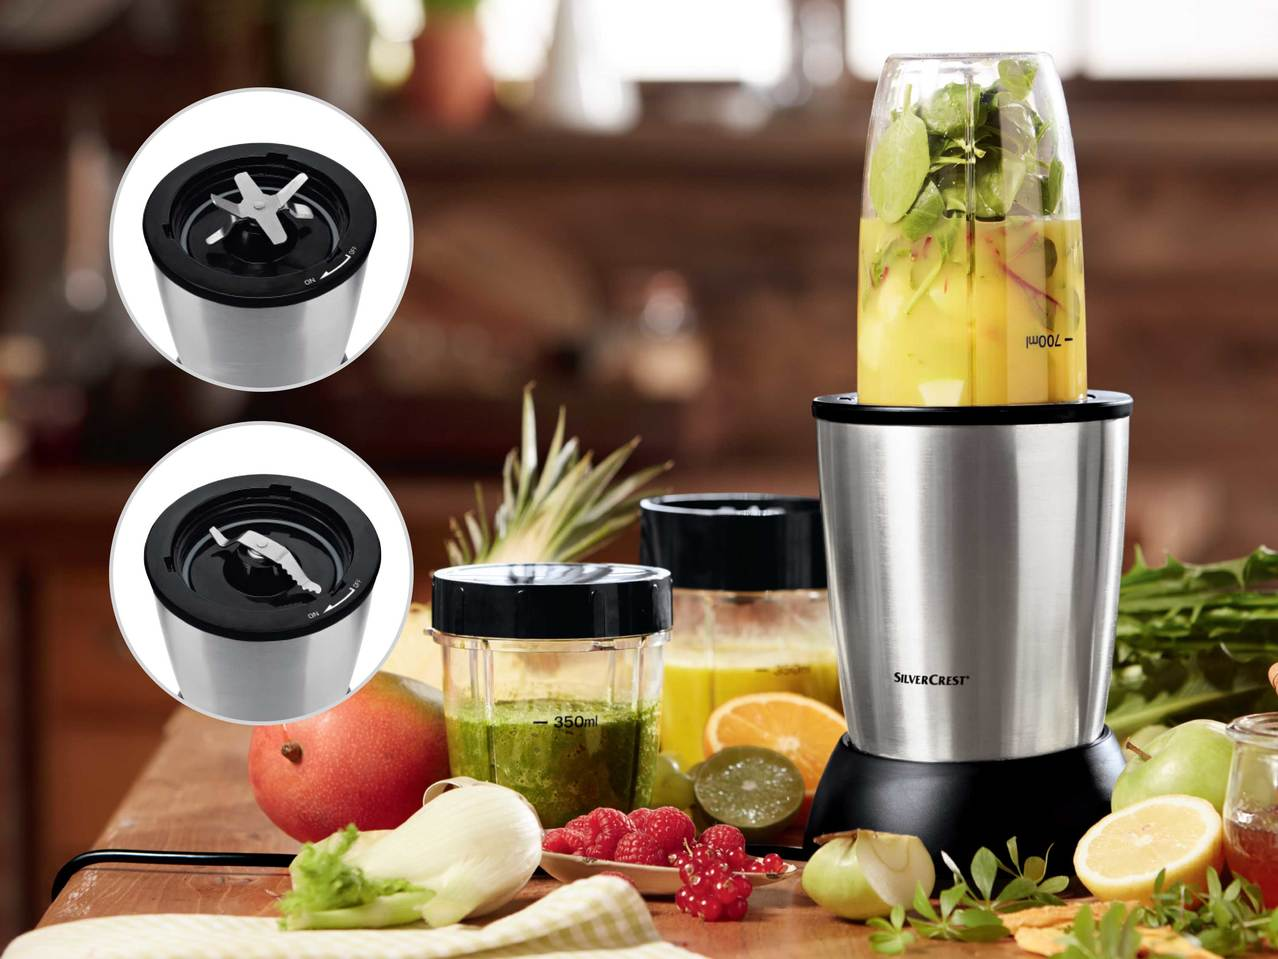 Lidl Silvercrest Nutrition Mixer Review Yes Lidl Has An Affordable Nutribullet Style Mixer Landing On